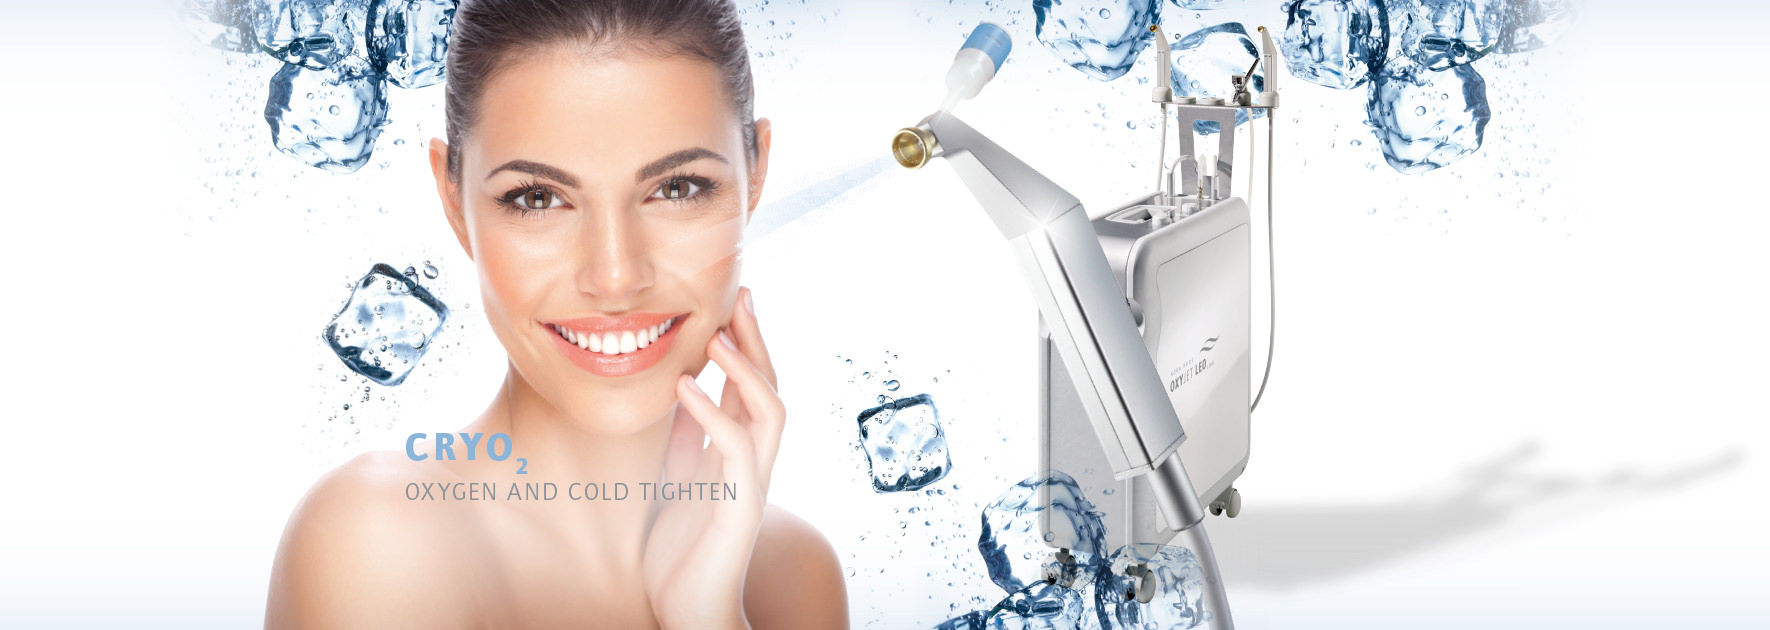 CRYO2 Technology | OXYJET UK